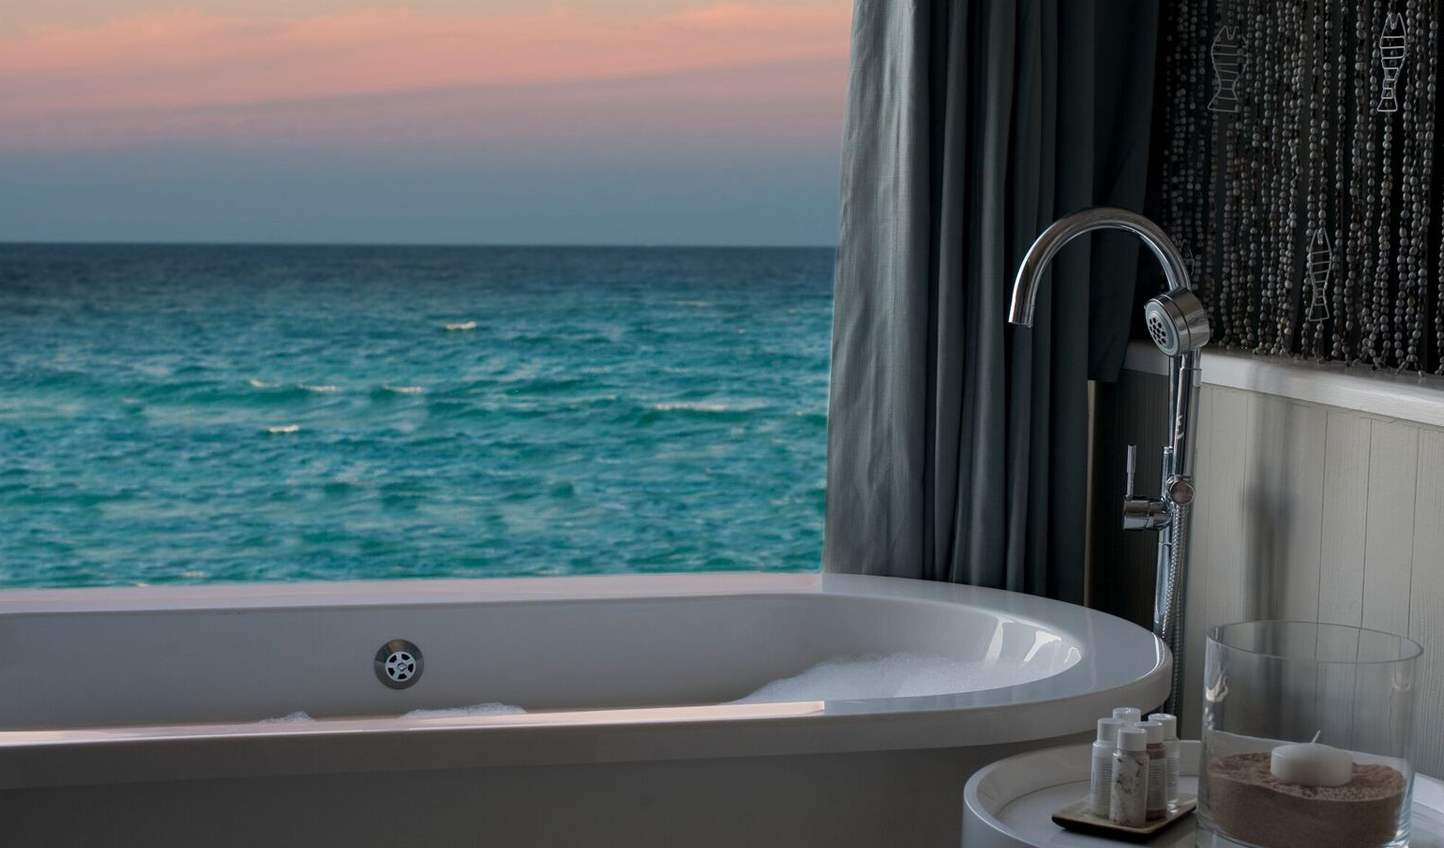 Pamper yourself with truly jaw-dropping views